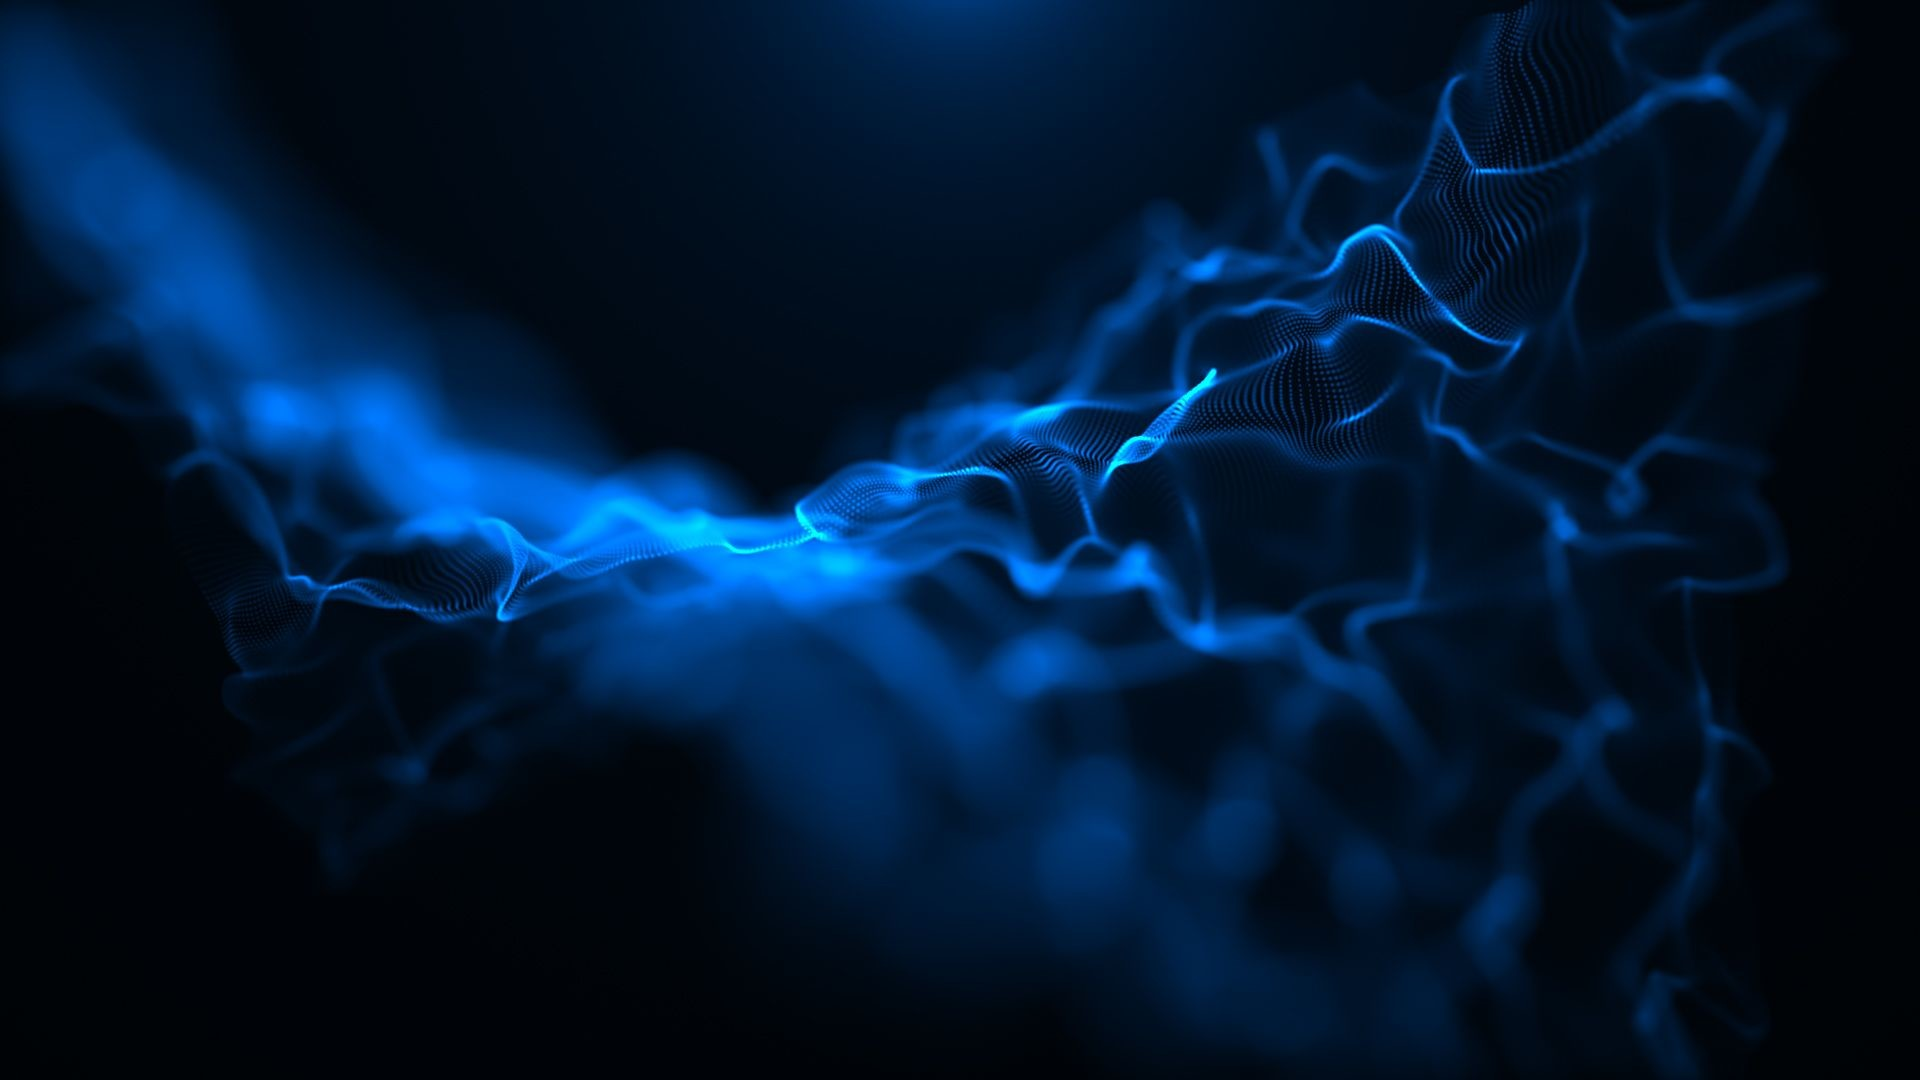 1920x1080 Abstract: Blue Form, desktop wallpaper nr. 62180 by emil1213